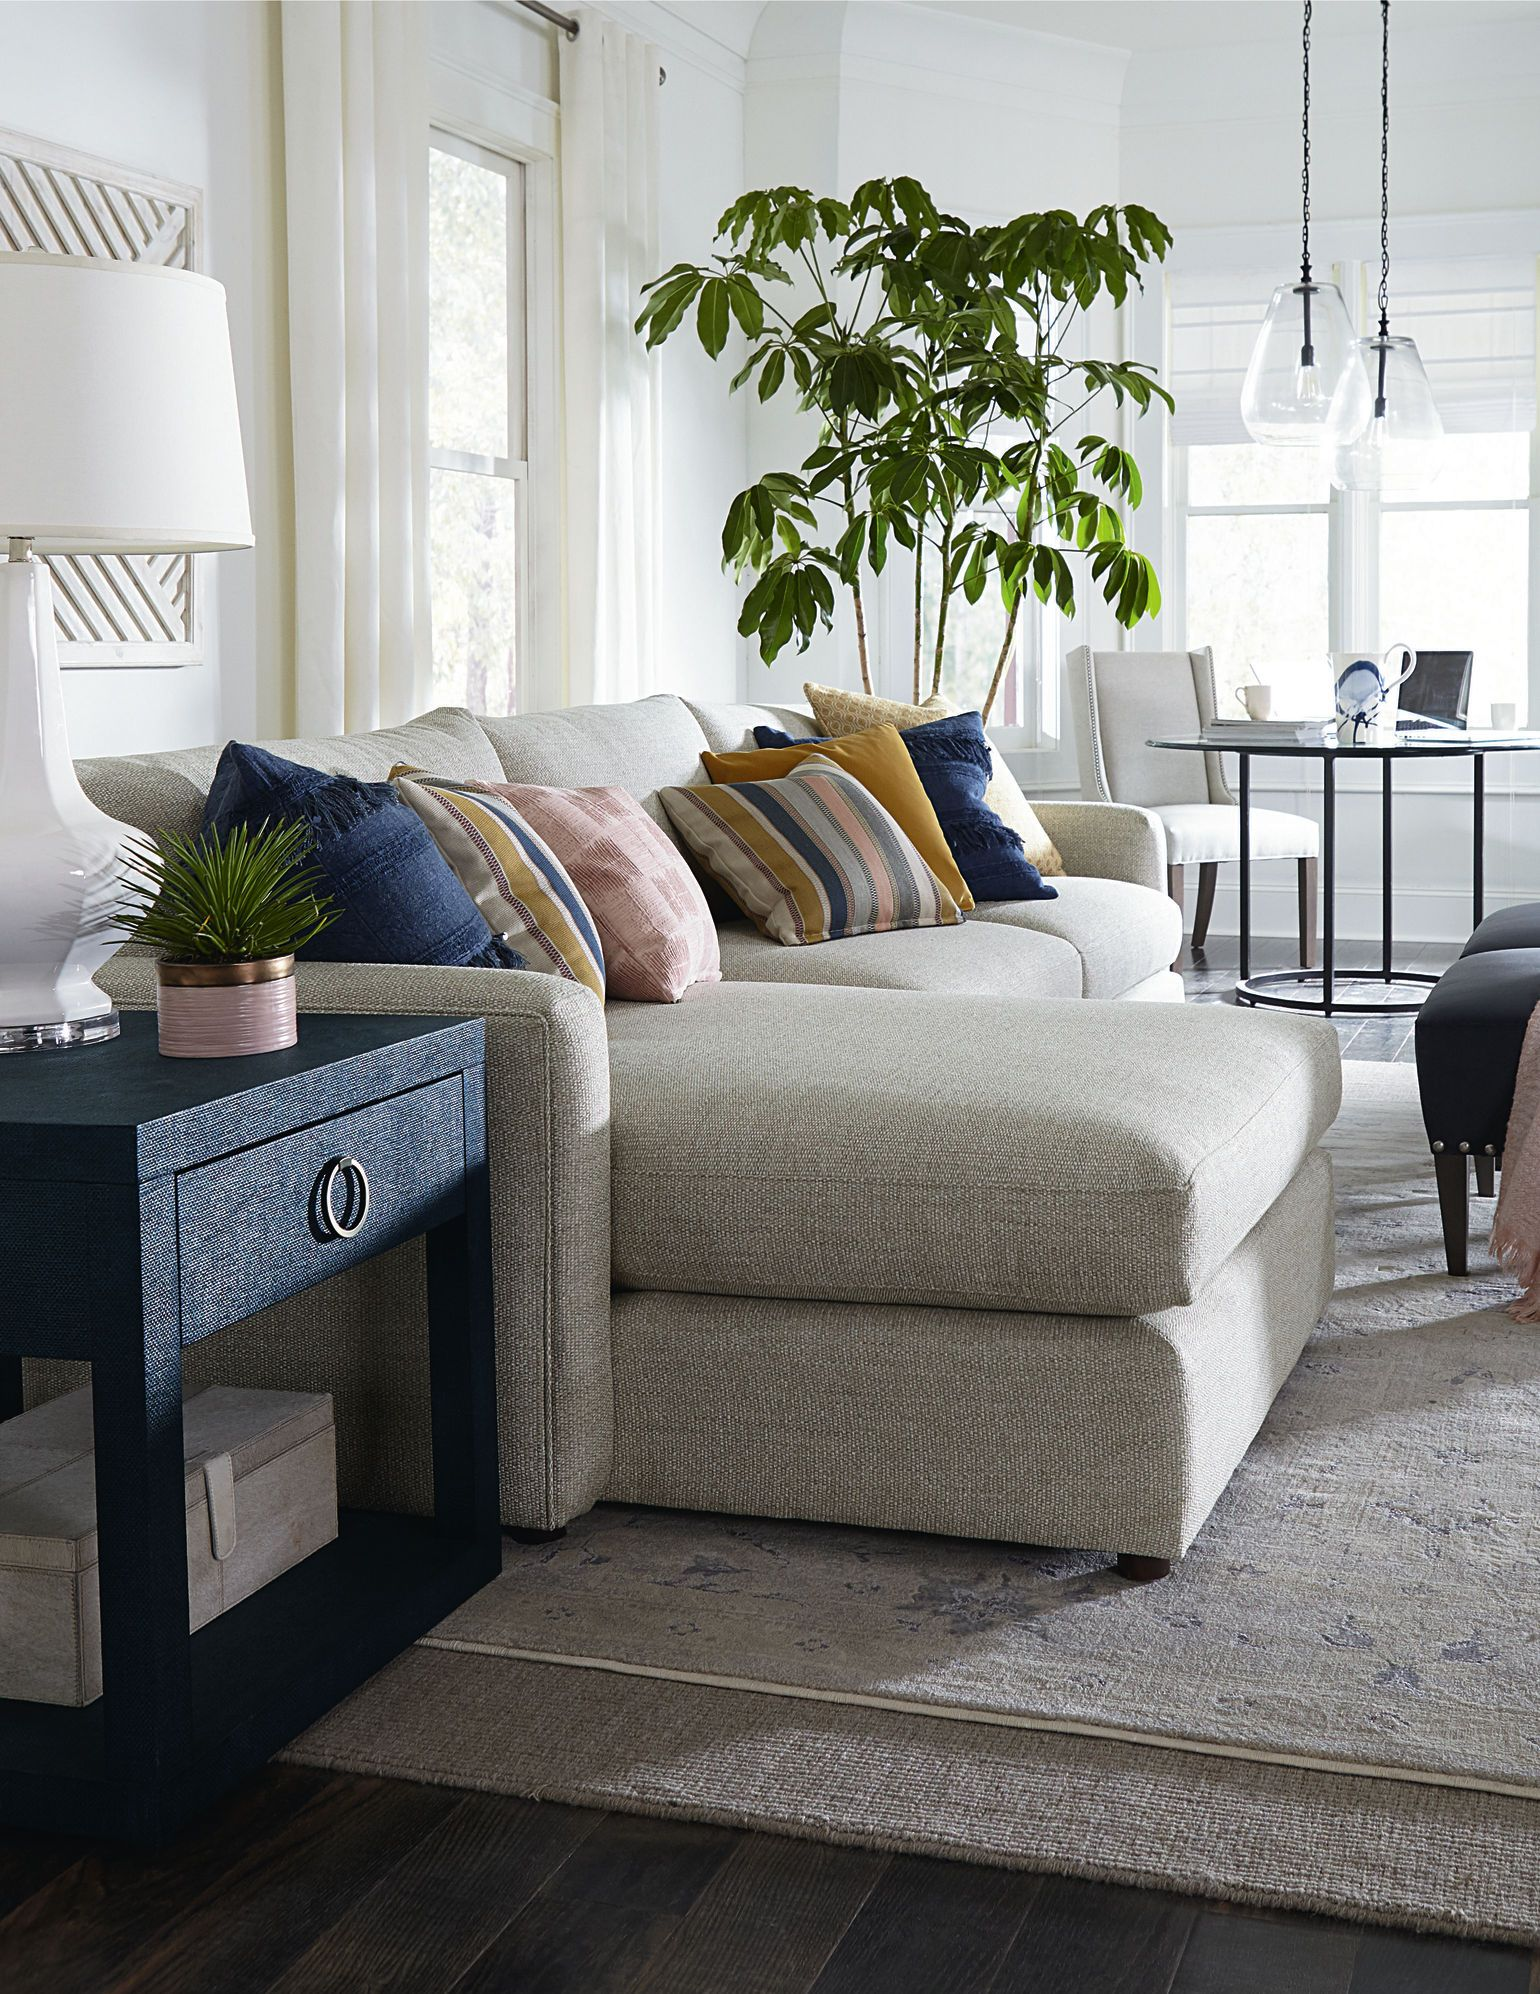 The Track Arms And Deep Seating Offer Stylish Comfort That Has A